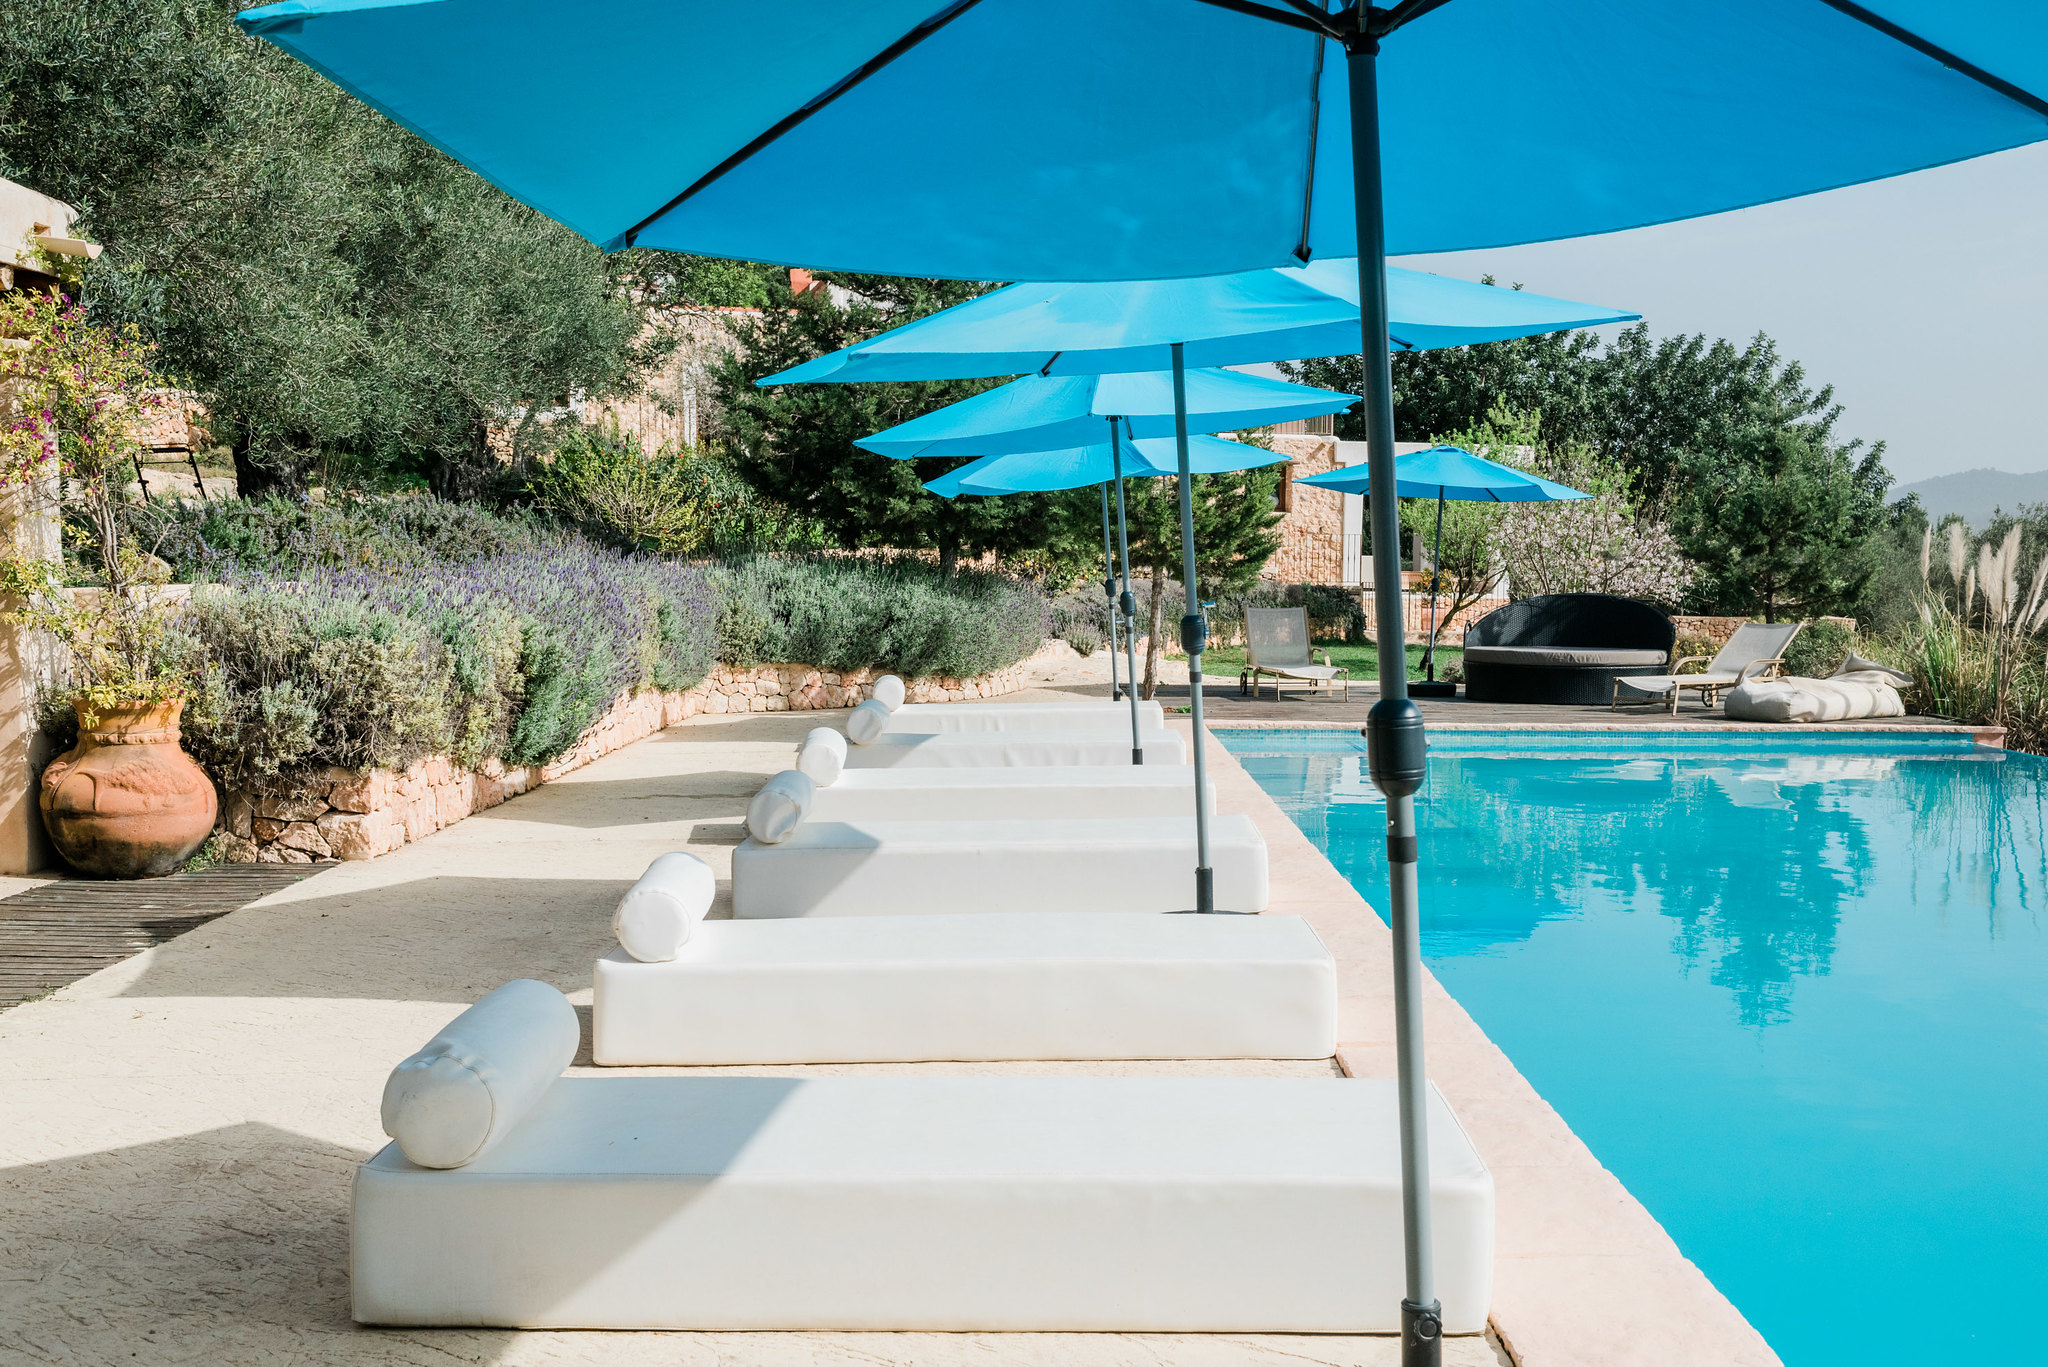 https://www.white-ibiza.com/wp-content/uploads/2020/06/white-ibiza-villas-los-corrales-exterior-pool-sunloungers.jpg